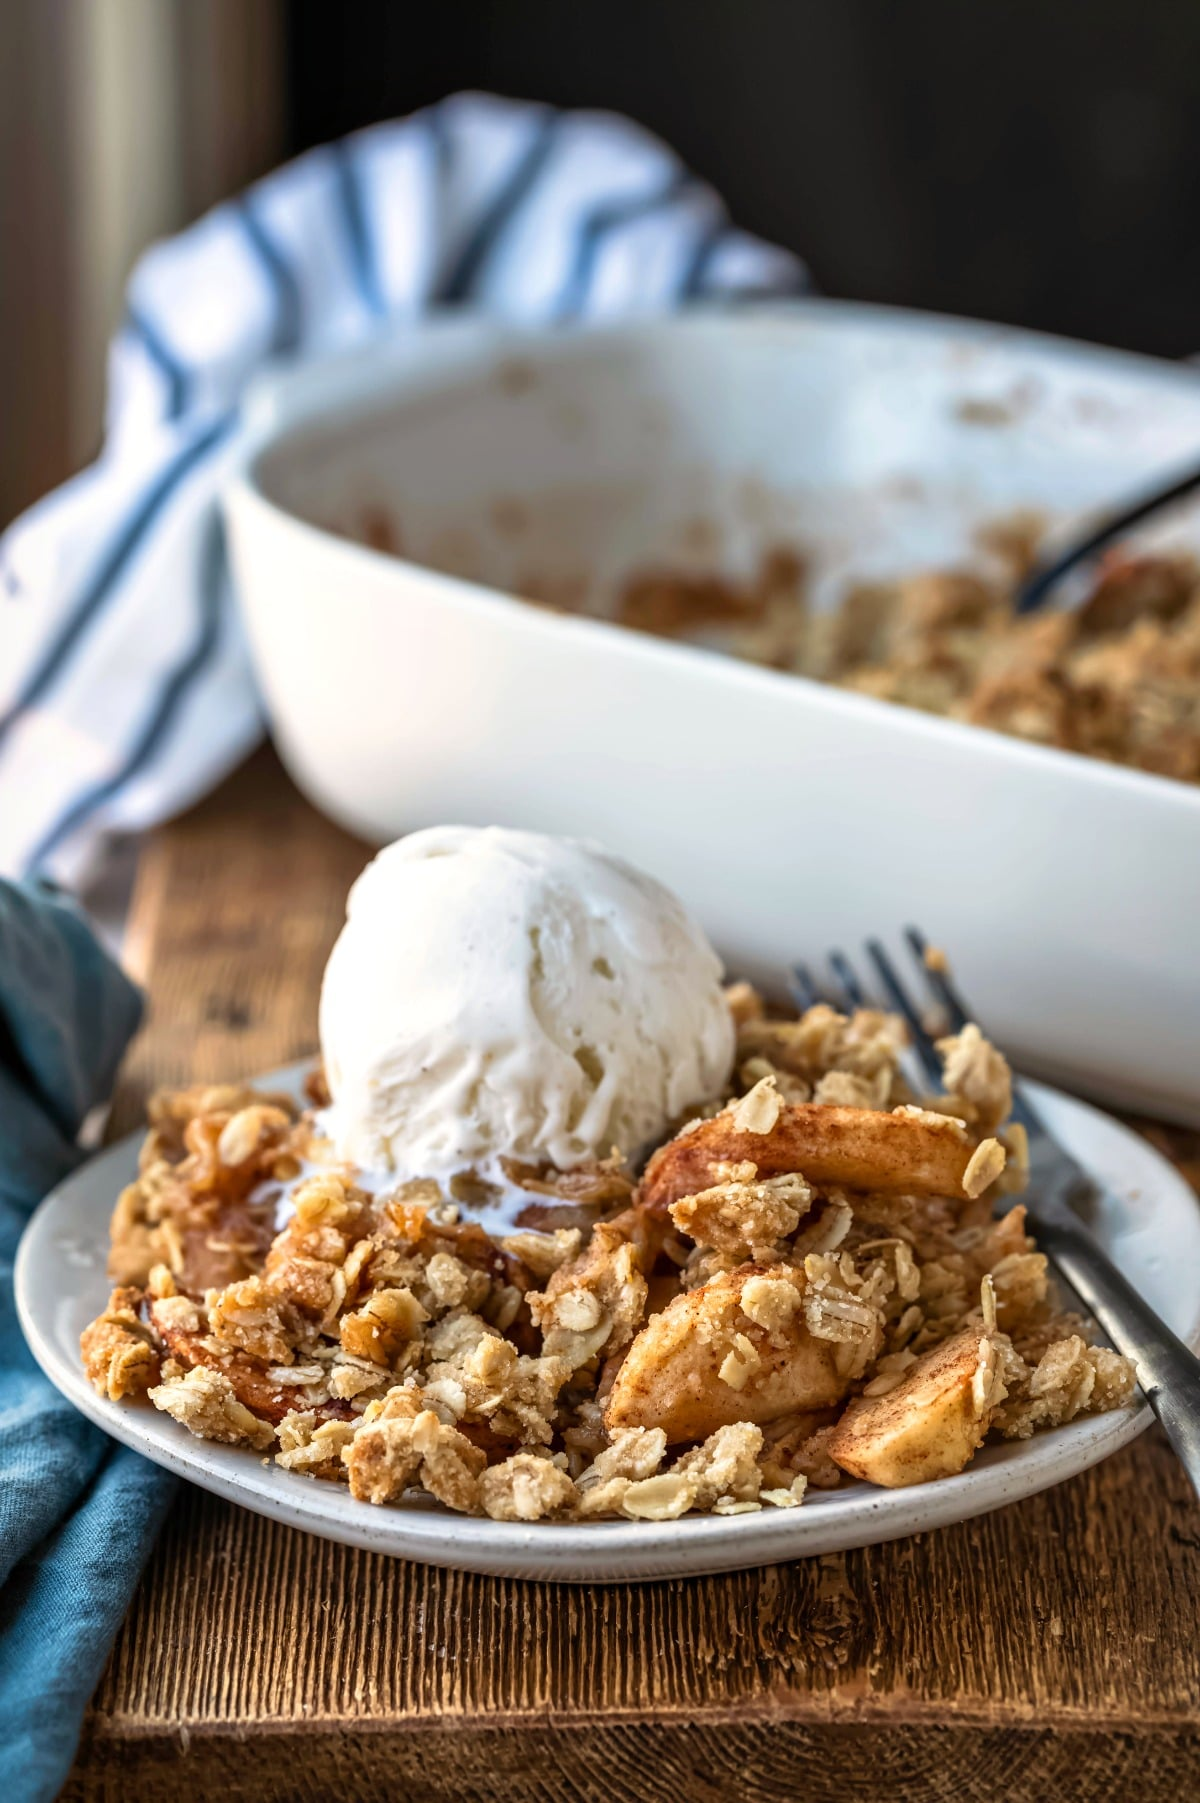 Apple crisp topped with a scoop of vanilla ice cream